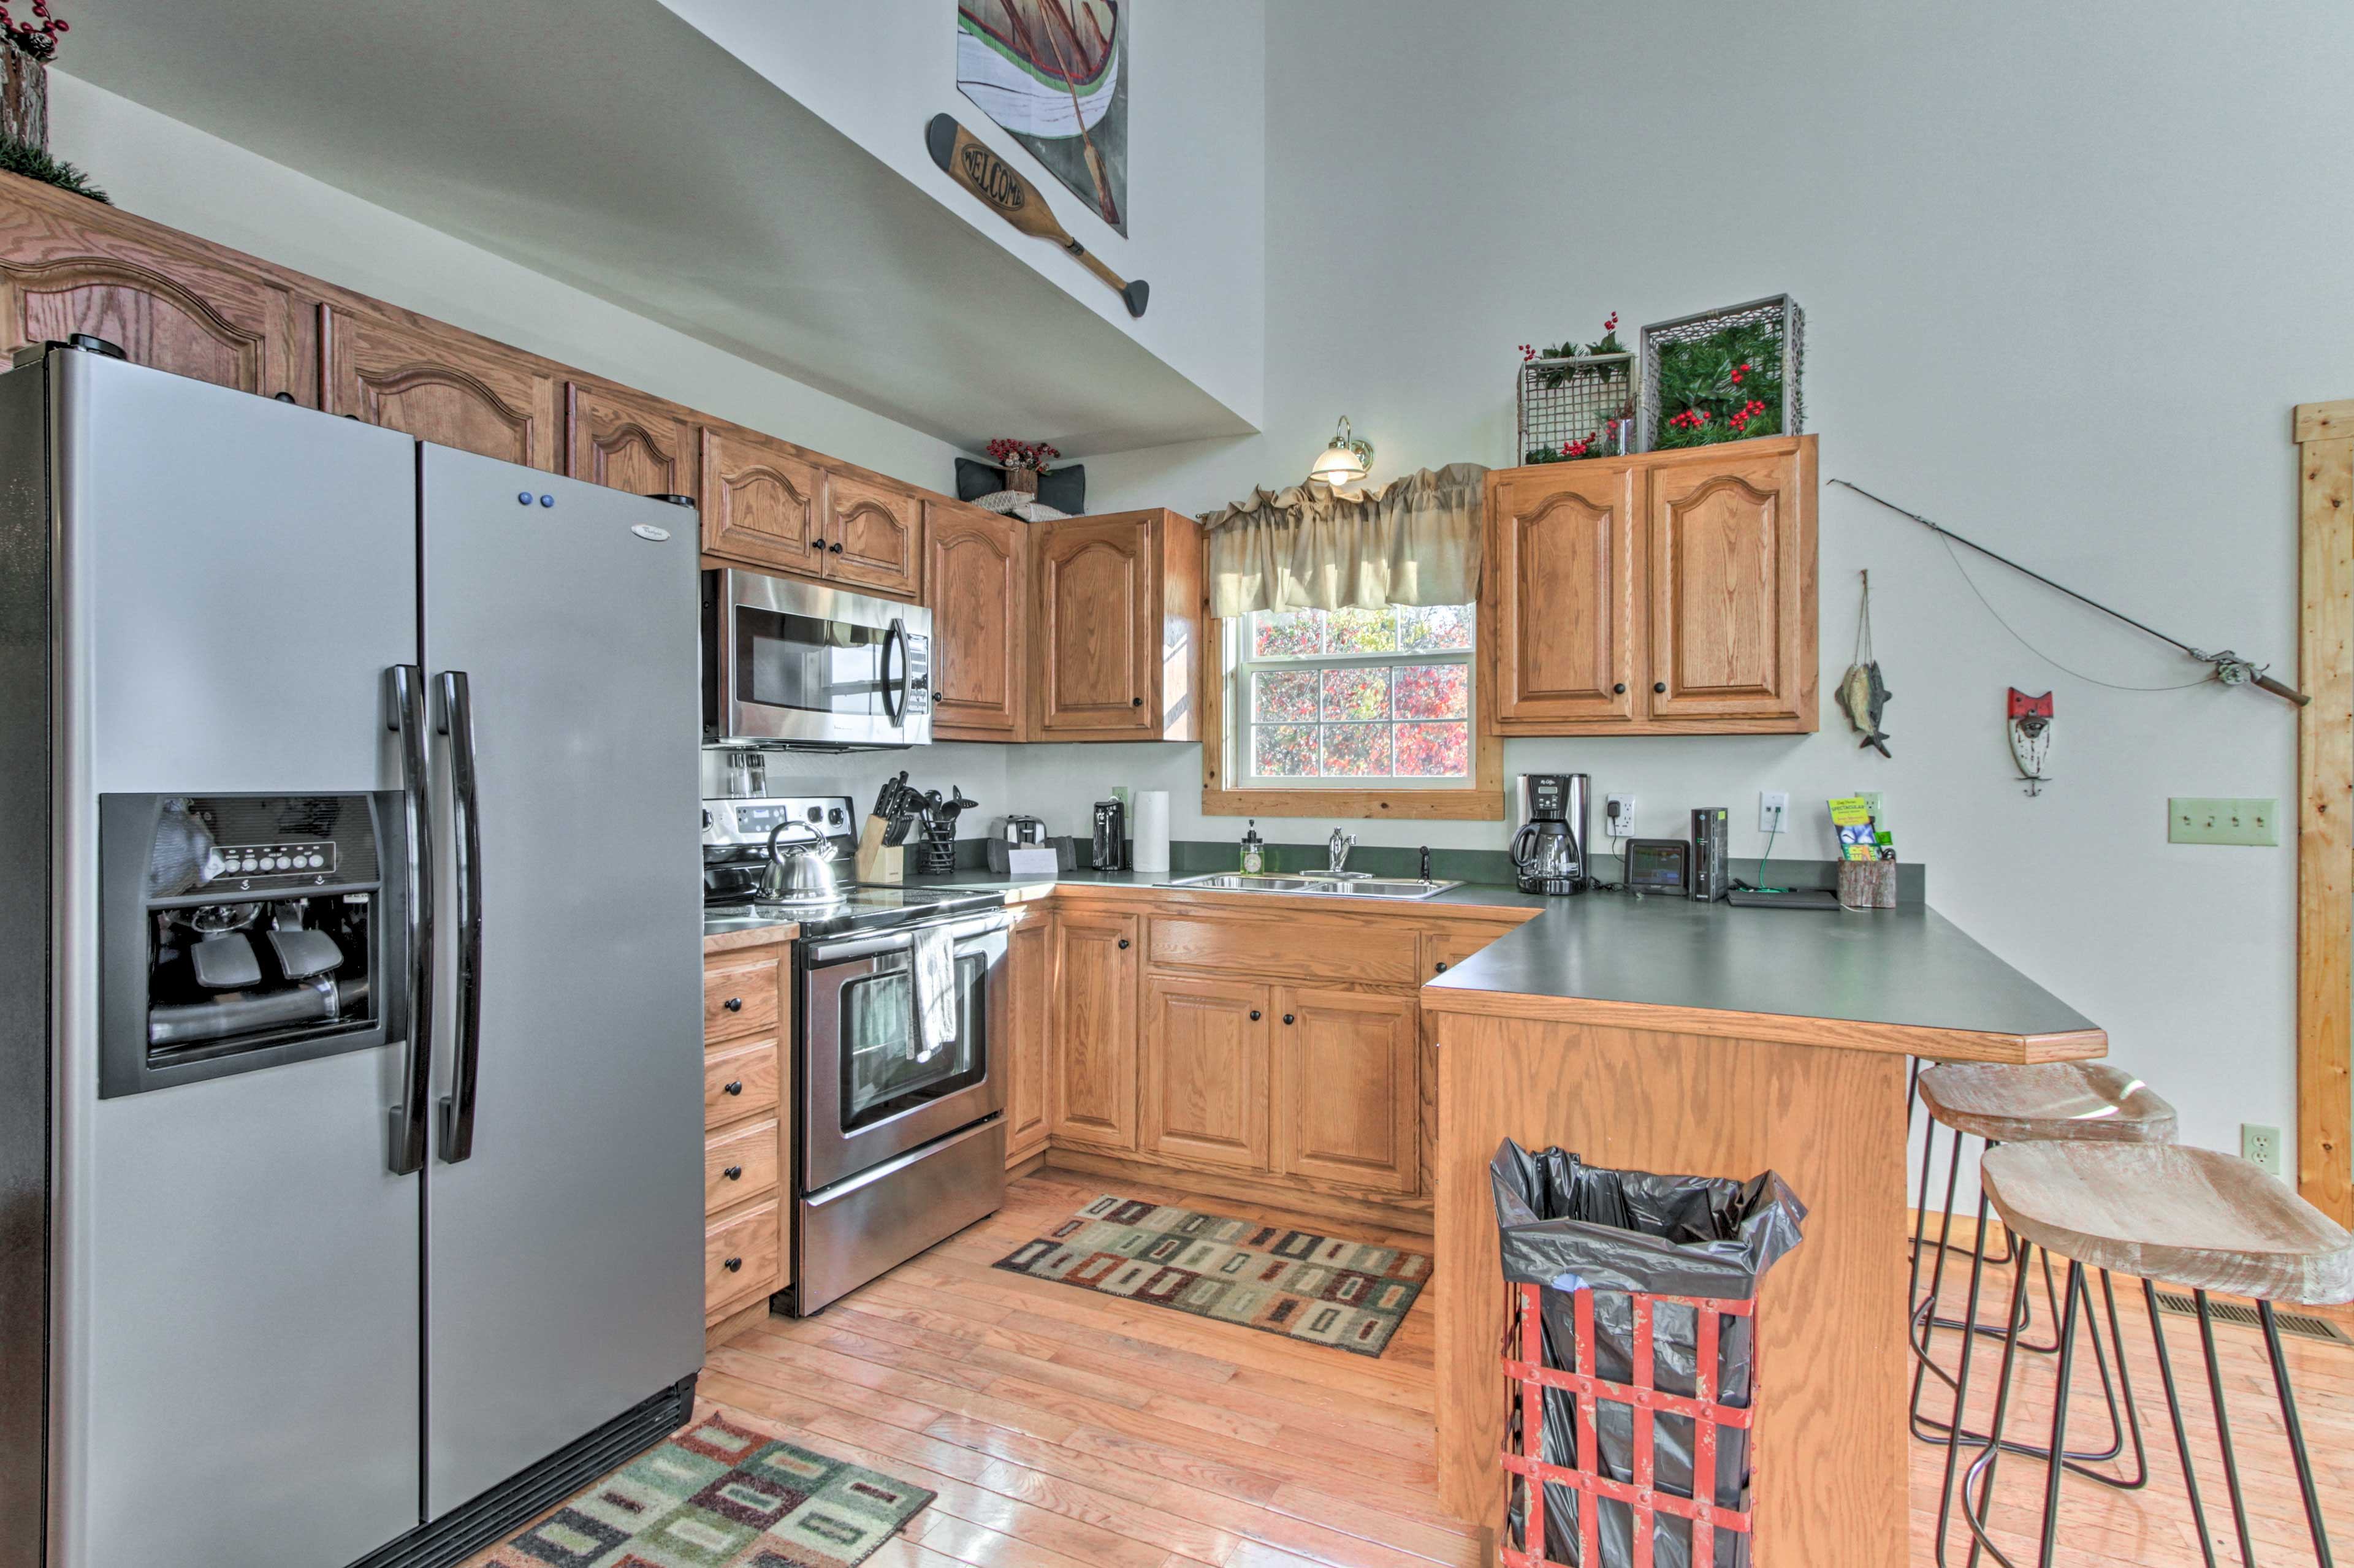 Spacious counters and modern appliances complete the kitchen.